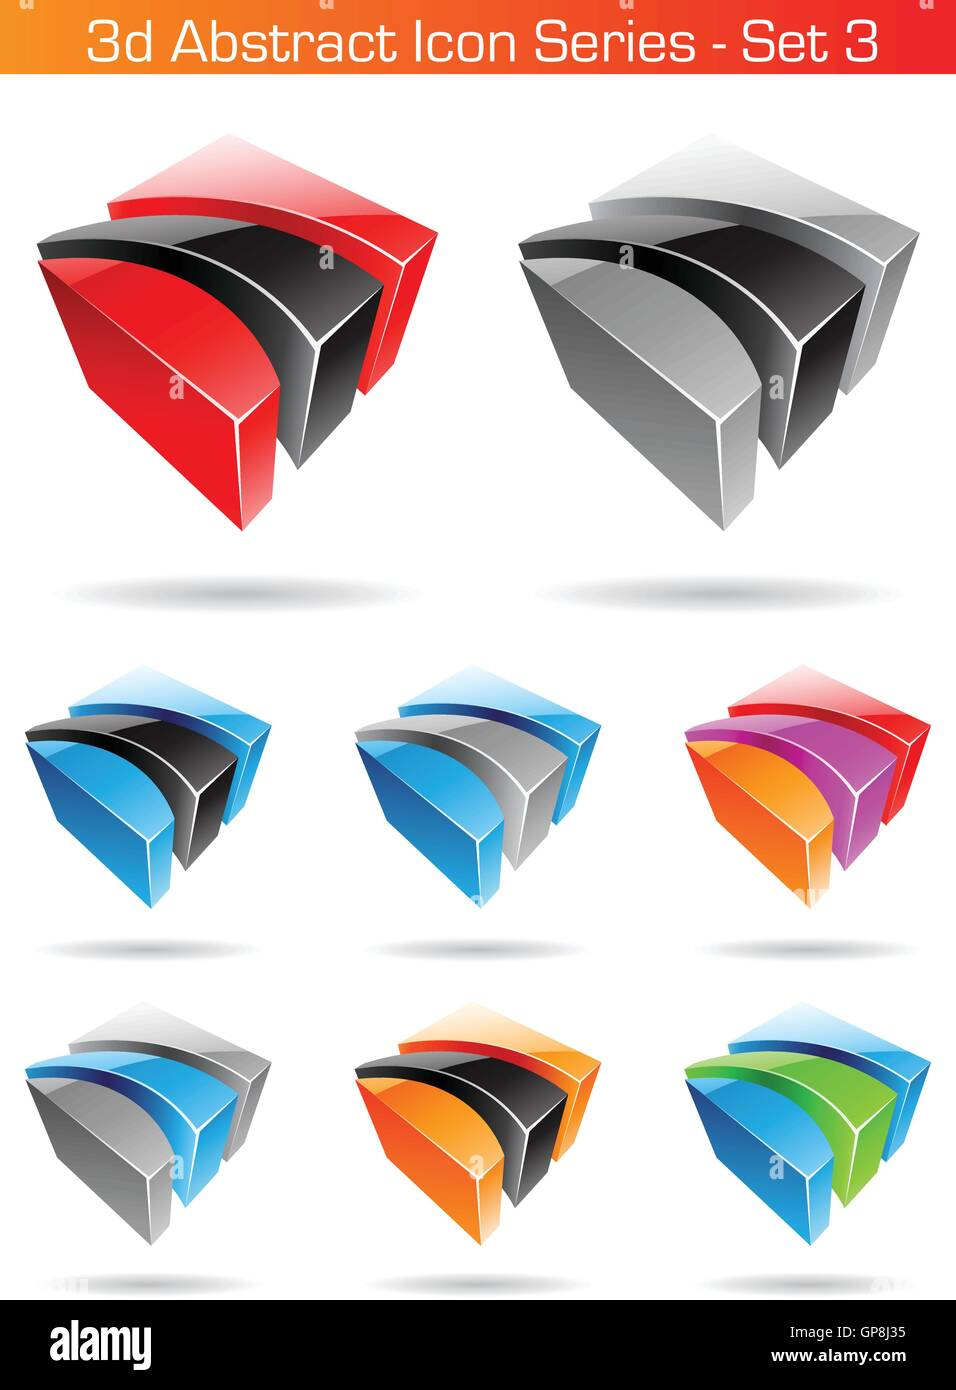 Vector EPS illustration of 3d Abstract Icon Series - Set 3 - Stock Vector